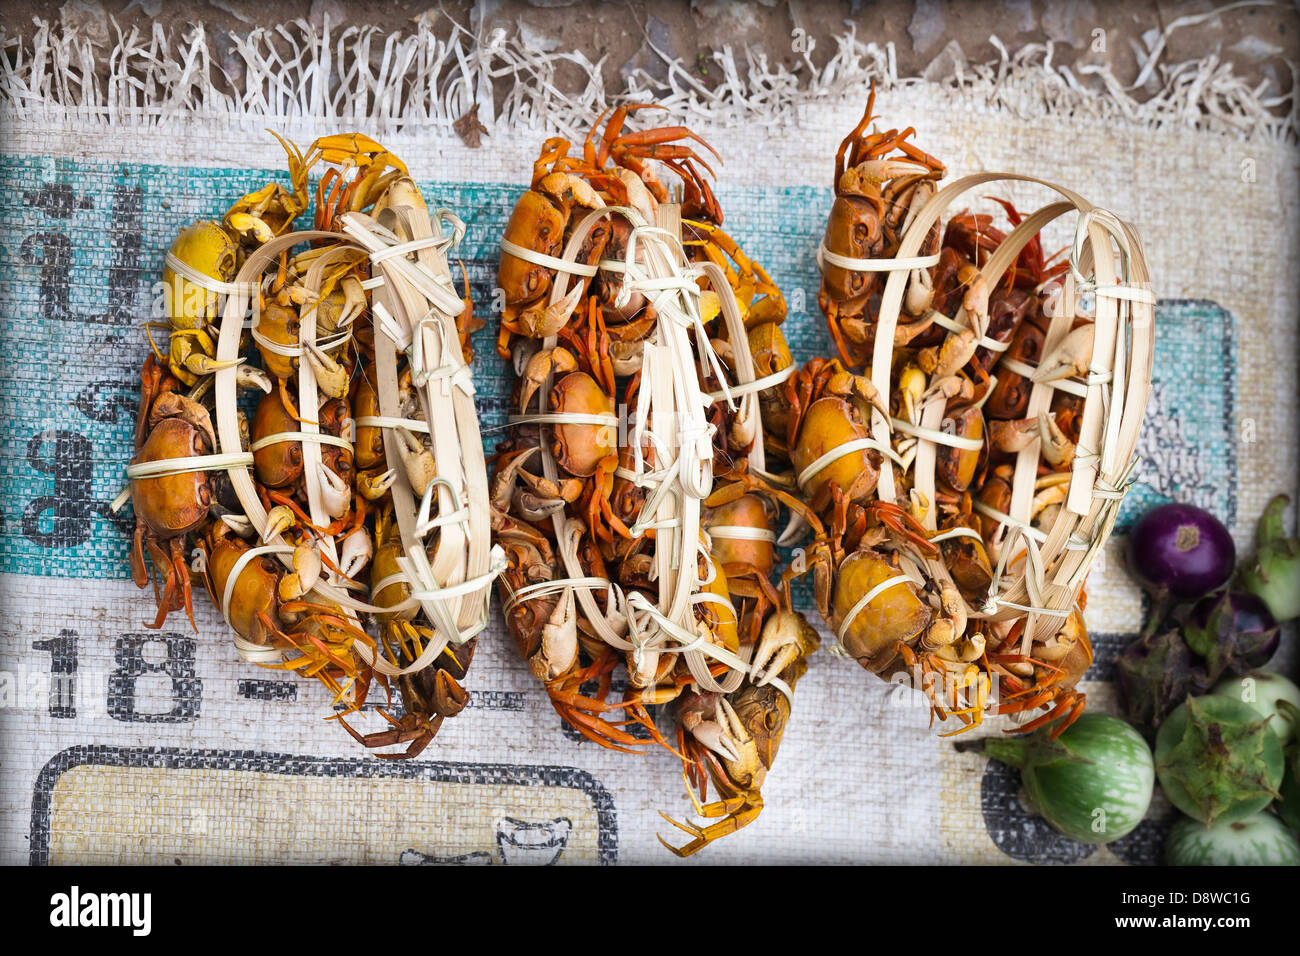 Fresh water crabs on a stall at the market in Luang Prabang, Laos - Stock Image